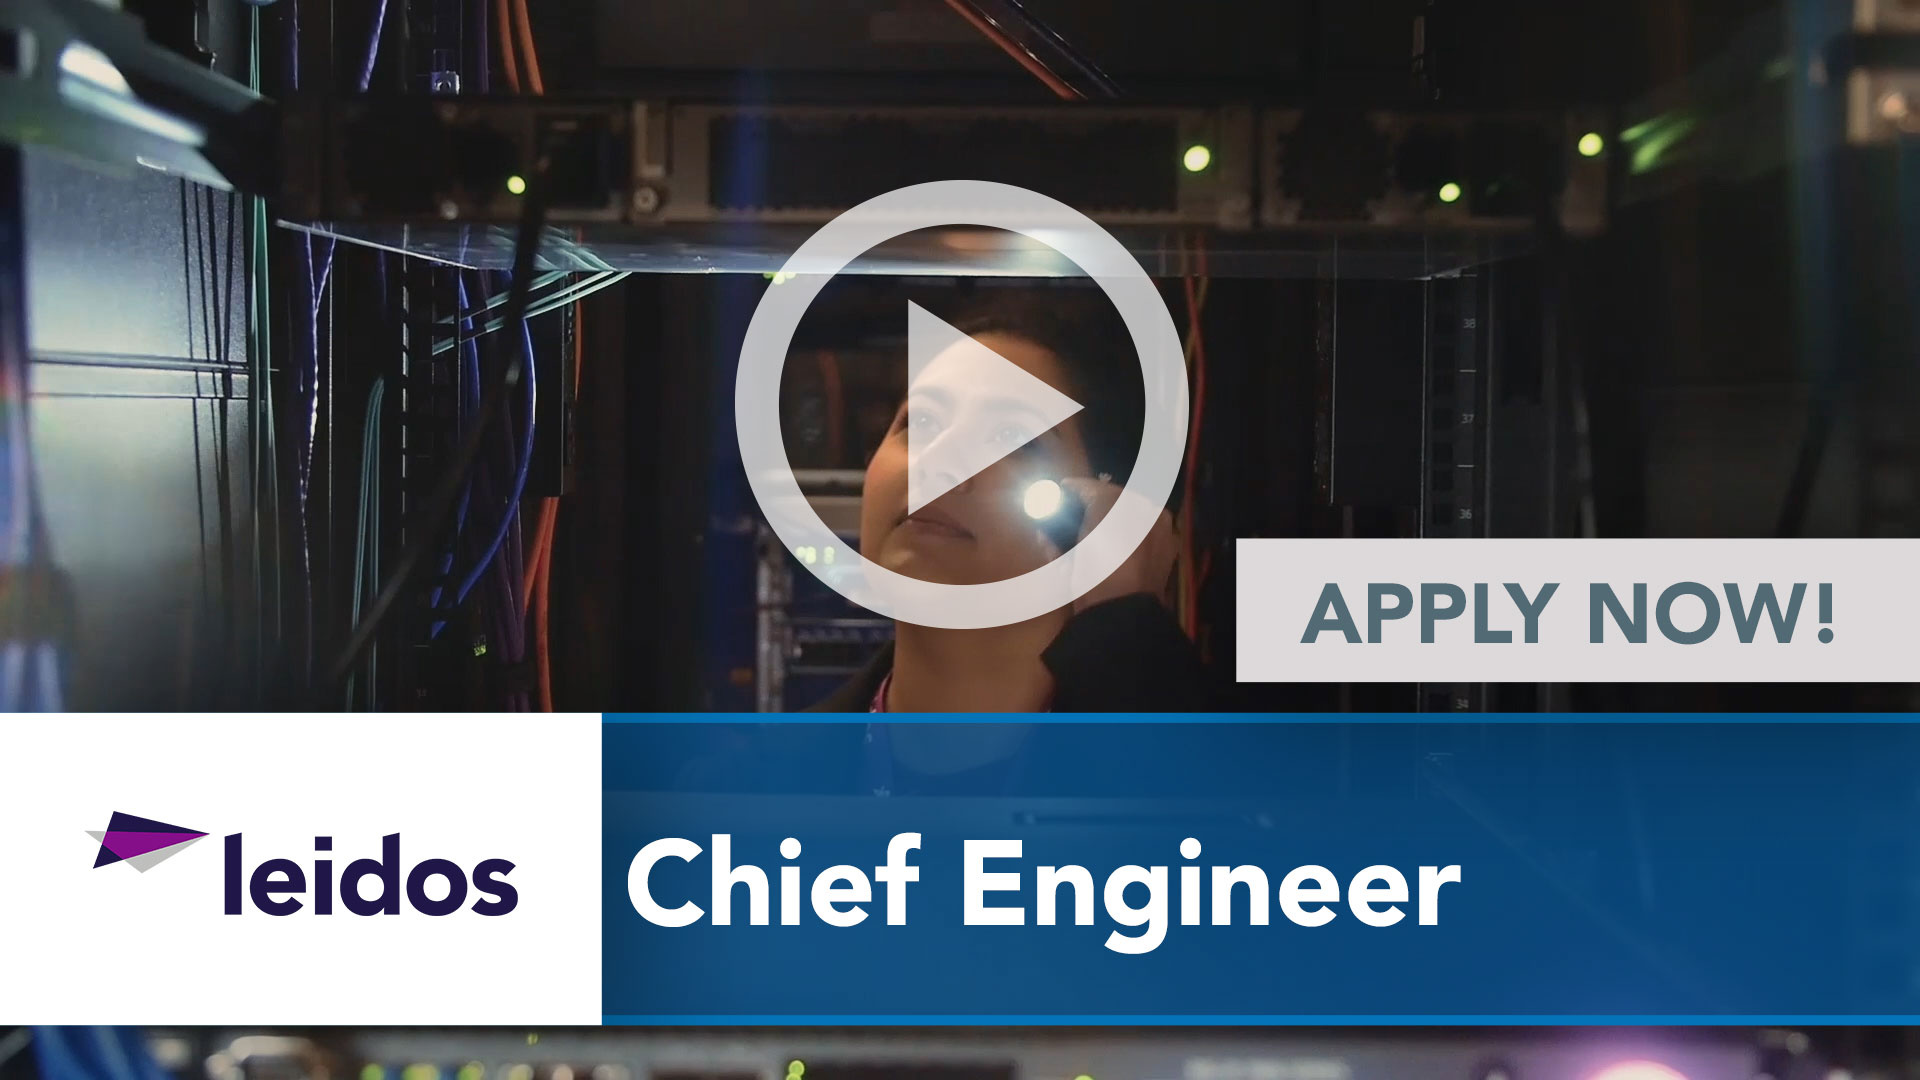 Watch our careers video for available job opening Chief Engineer in National Capital Region with